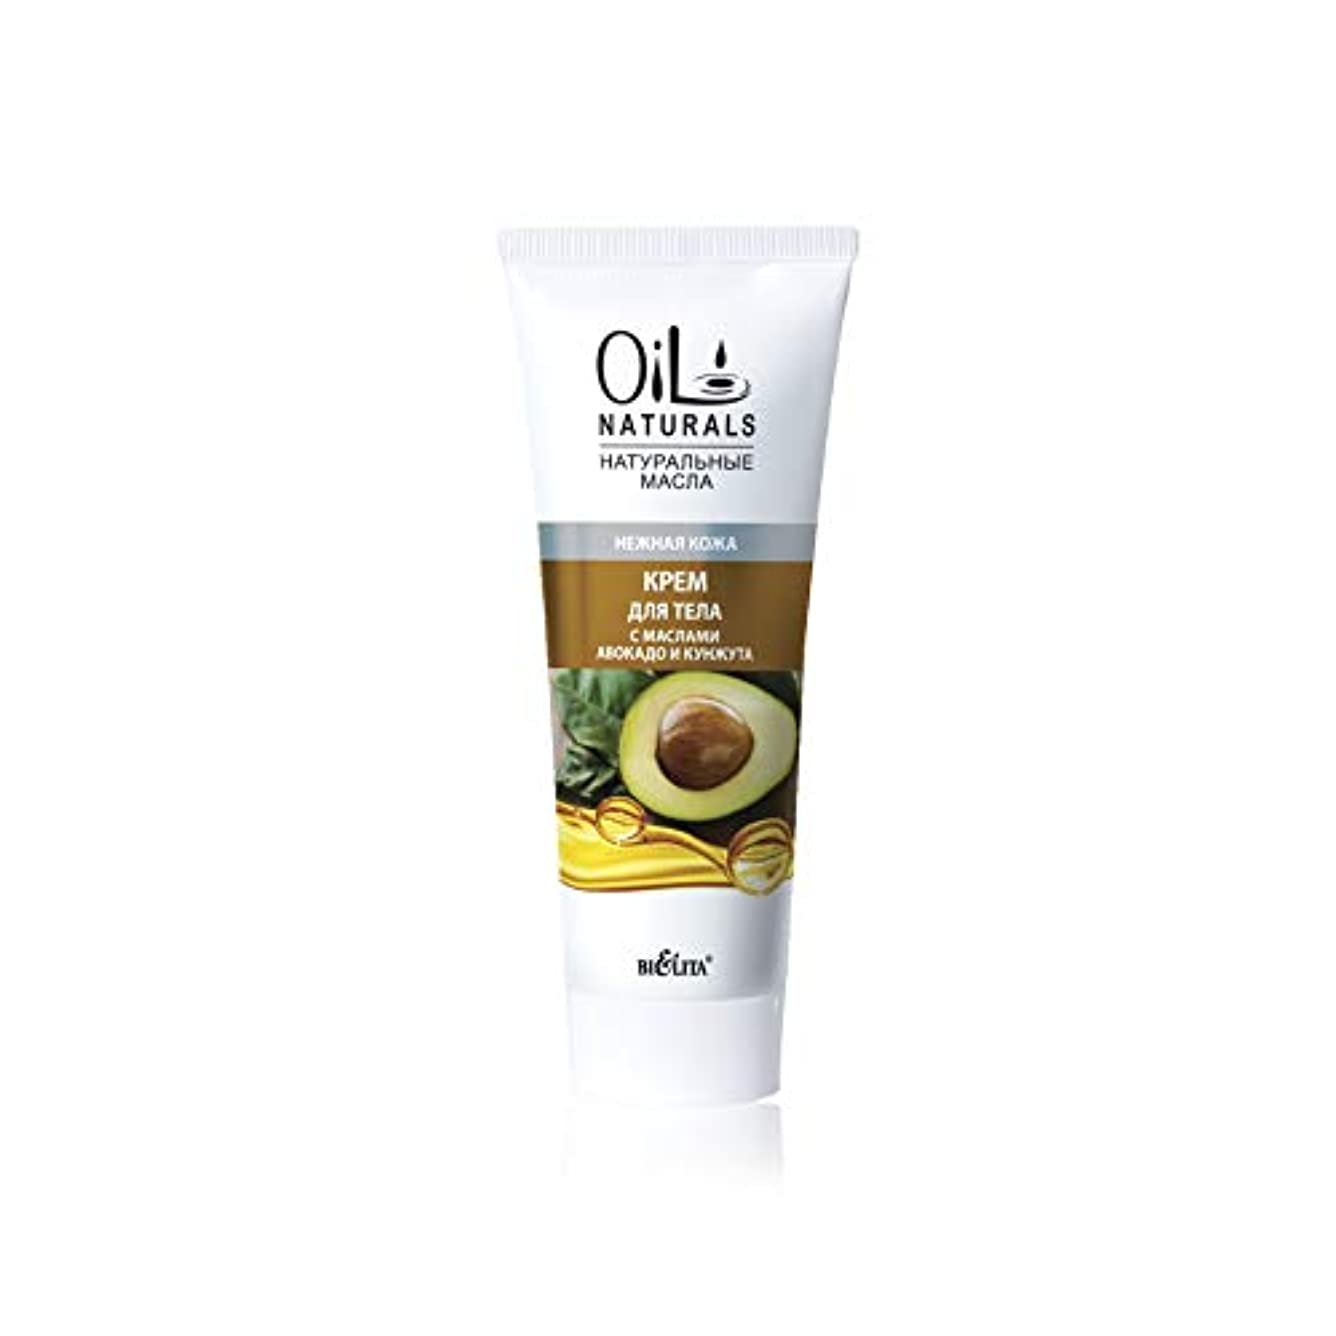 外向き硬さ修羅場Bielita & Vitex | Oil Naturals Line | Moisturizing Body Cream for Delicate Skin, 200 ml | Avocado Oil, Silk Proteins...